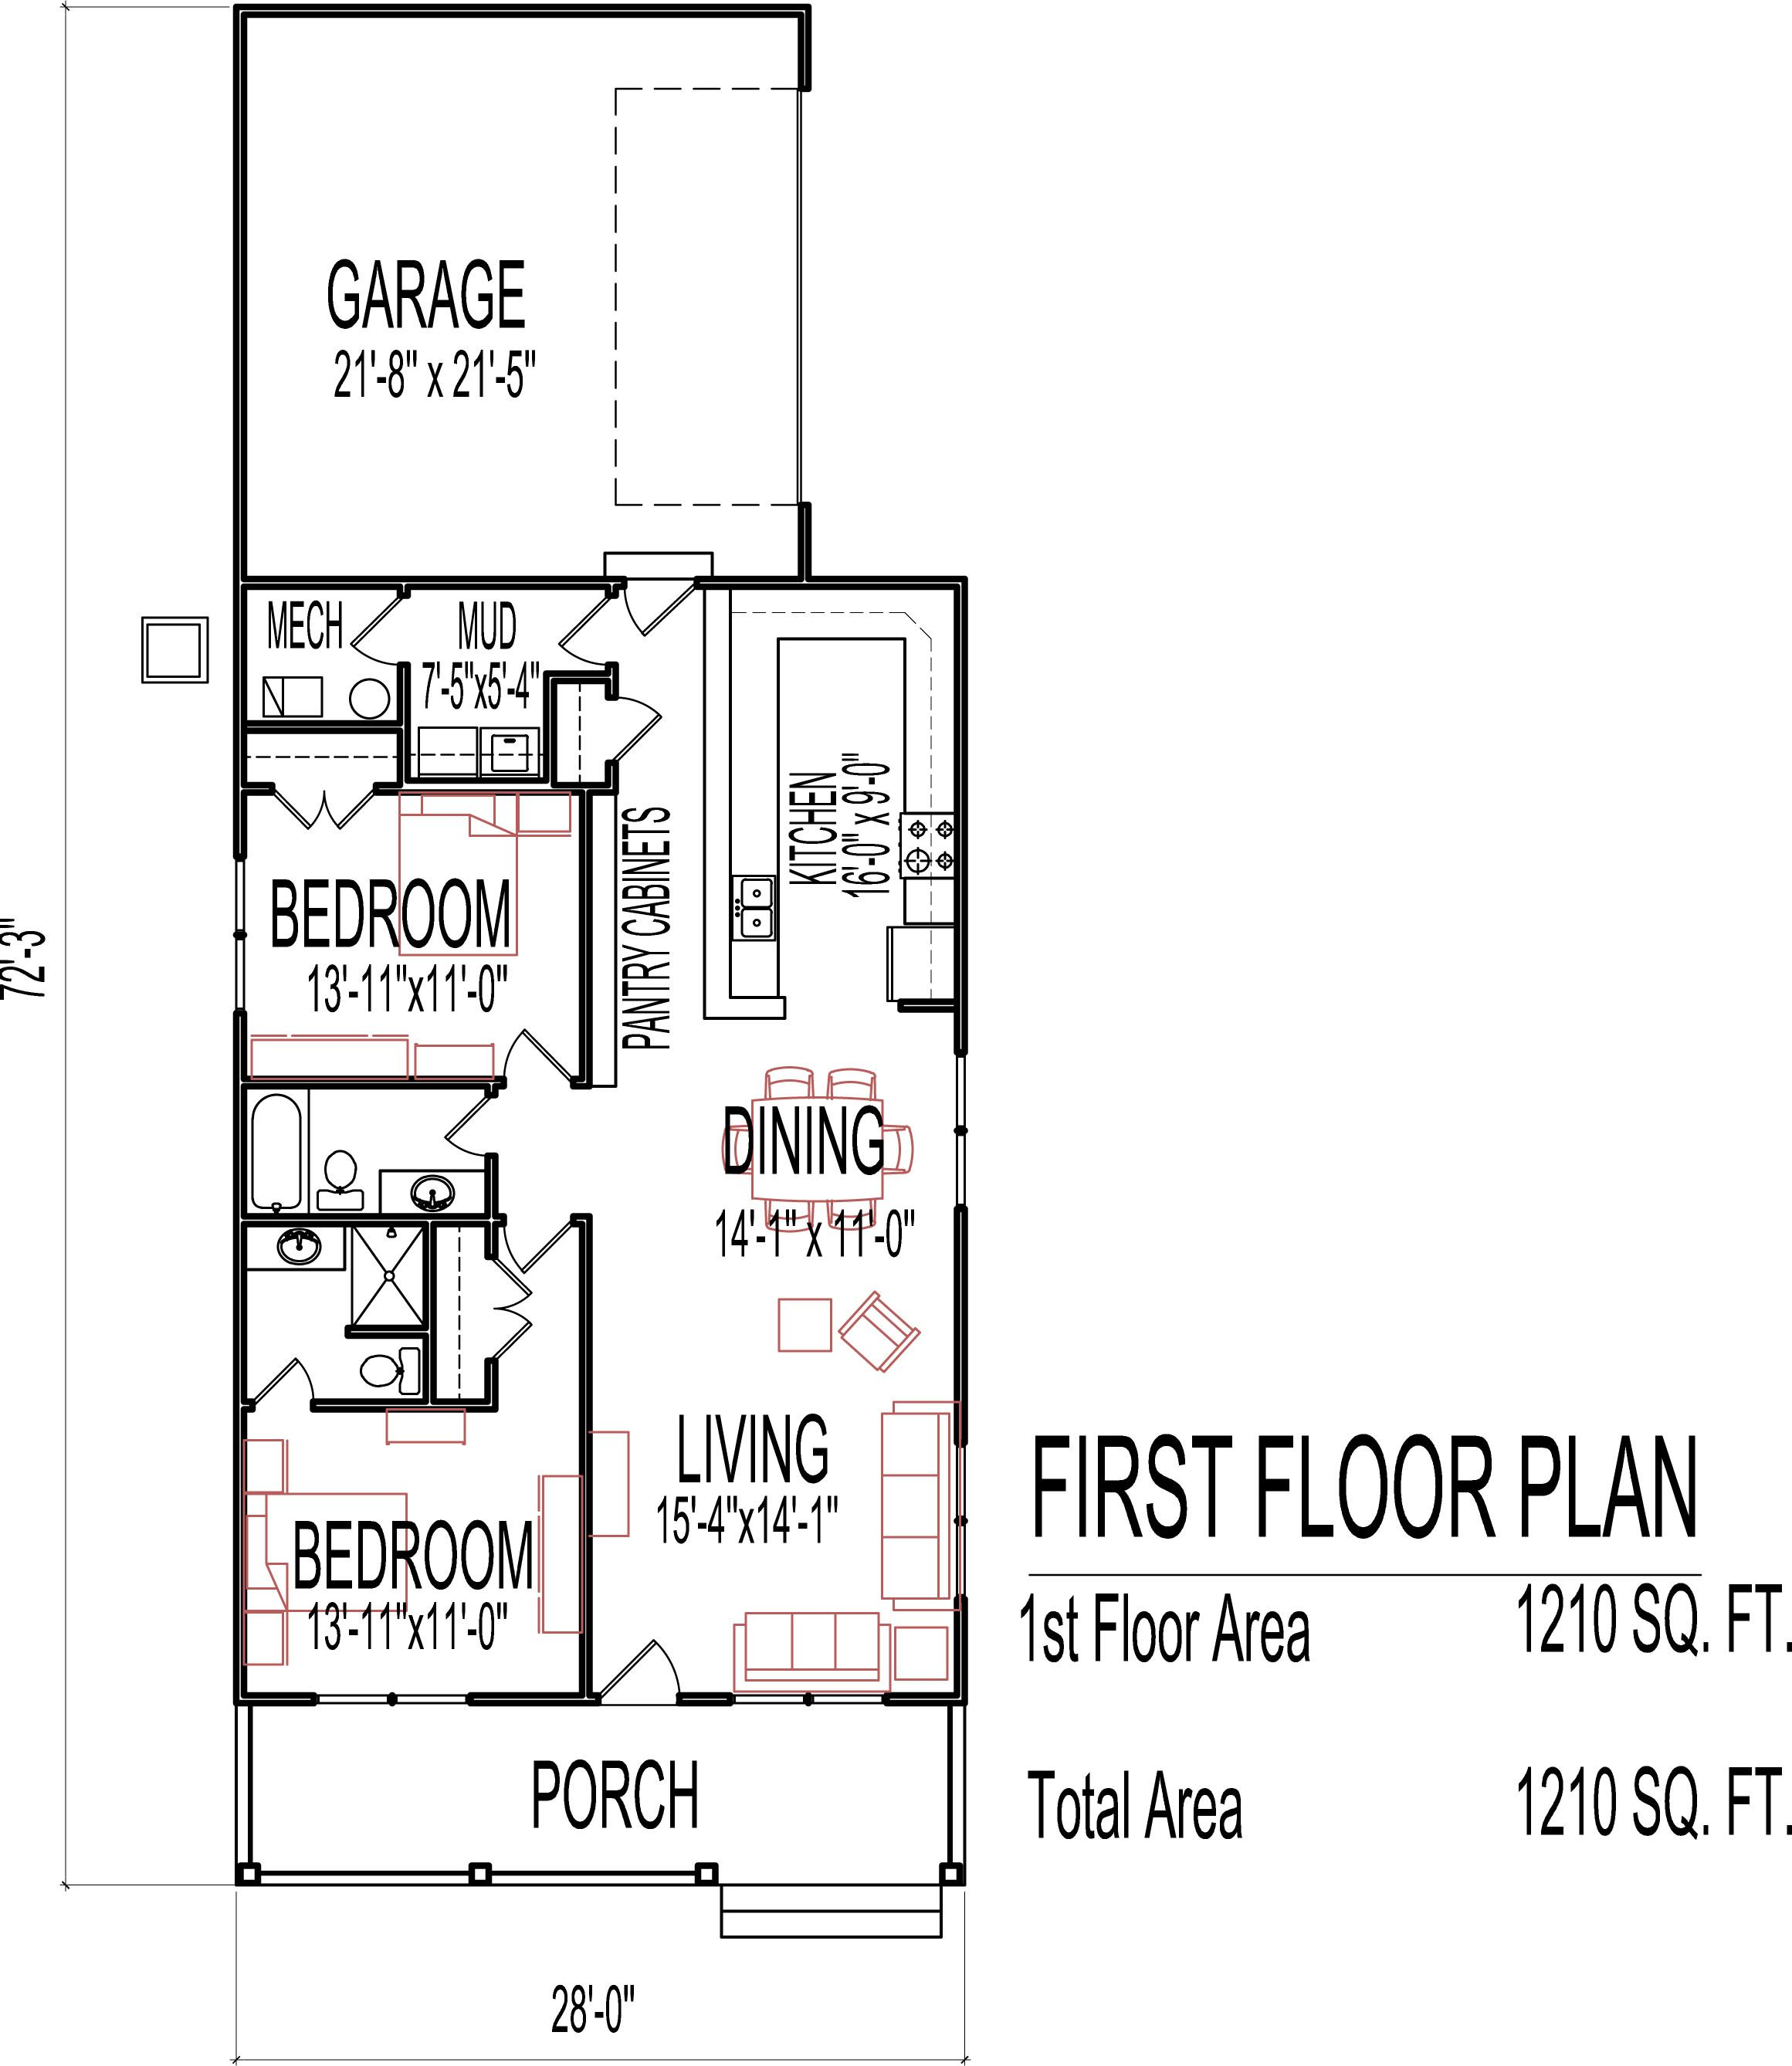 Simple One Story House Plans small low cost economical 2 bedroom 2 bath 1200 sq ft single story